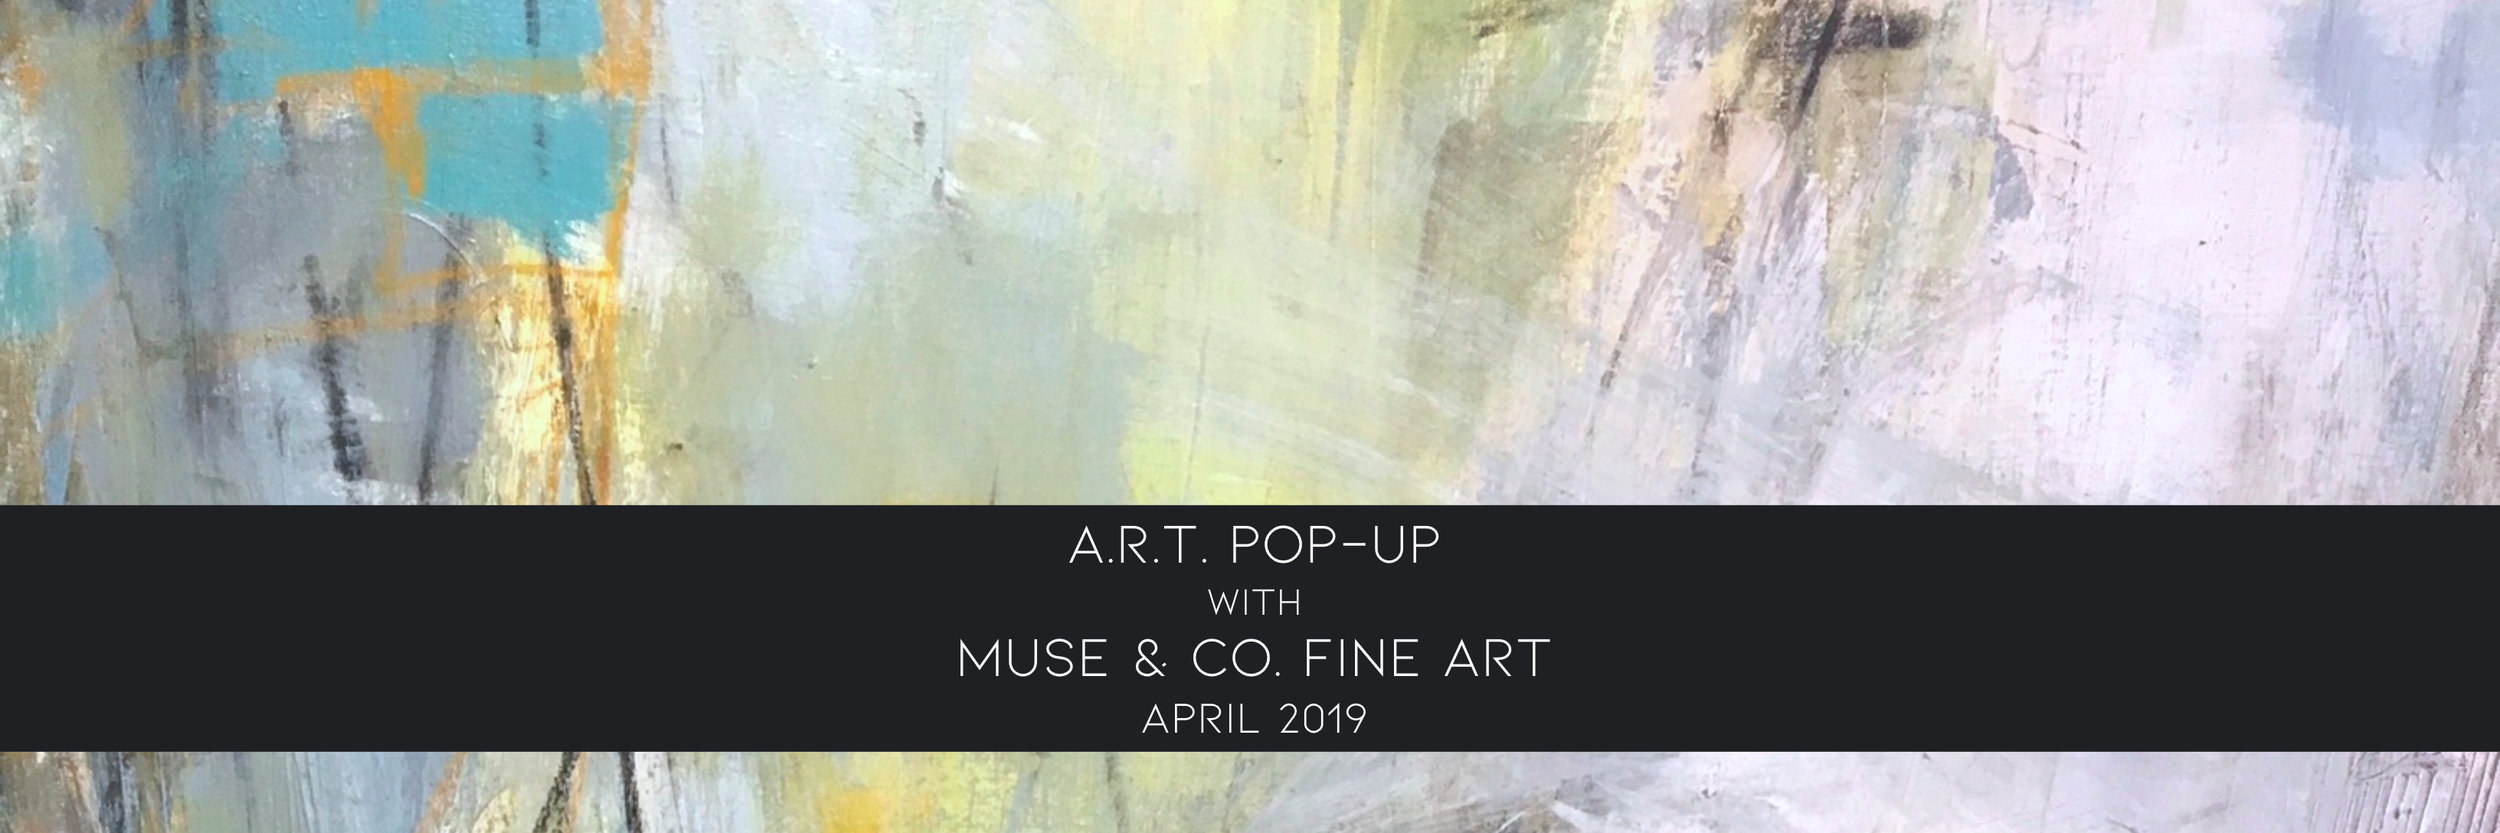 A.R.T. POP-UP FRIDAYApril 55-9 pm - Join us as we celebrate the talented artists of MUSE & CO. at the second edition to the 2019 Marietta Square Art Walk season. Meet the artists and see why First Friday is the hot night for the Arts in Marietta. This First Friday show features the ceramic vessels by Janet McGregor Dunn.Evening Highlight:Live painting with Lorraine Lai as she demonstrates the Flow Painting technique which she will teach on April 13.Be sure to enjoy the Art Walk Photo Booth Experience in the Upper Gallery with Winters Street Studio!A.R.T. on Anderson is the new art experience in Marietta Square. Join us for art classes, pop-up shows and business-building workshops for creatives.